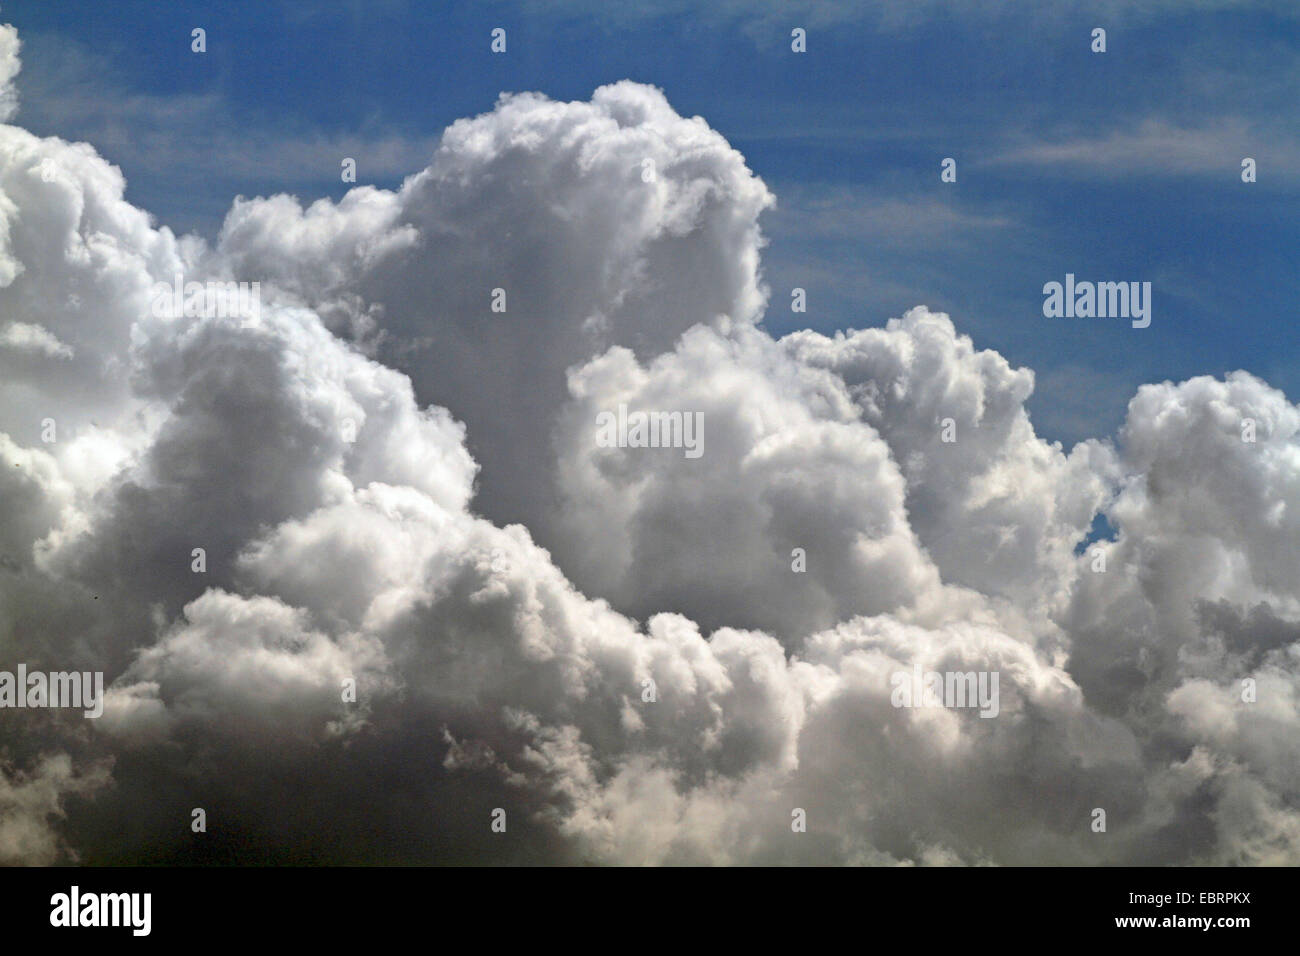 cumulus clouds at atmospheric instability, Germany - Stock Image